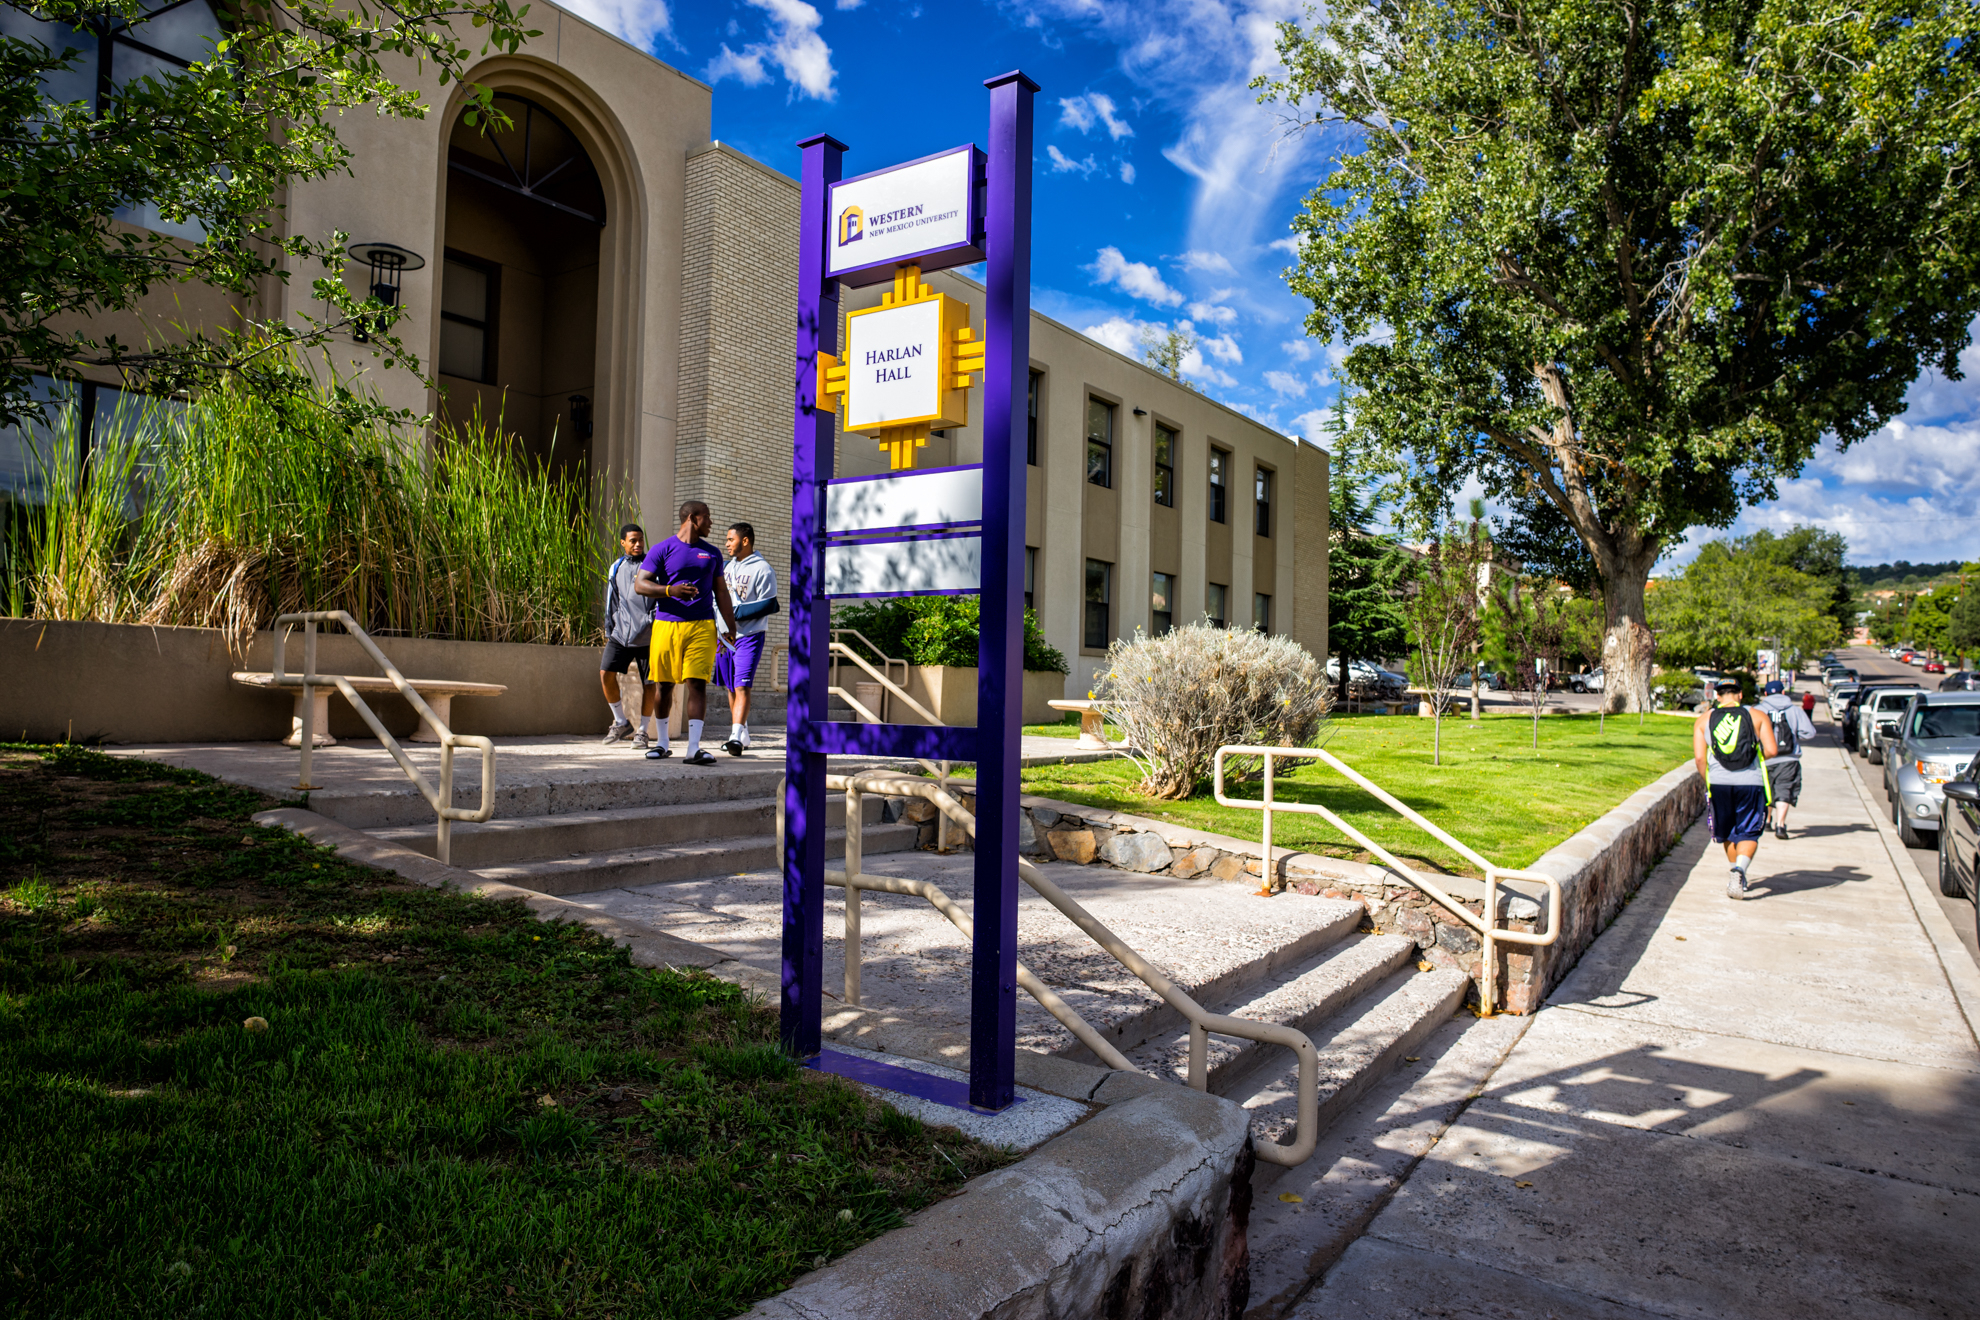 Fall Semester Begins – Western New Mexico University Throughout Delaware State U Fall Semester Start Date